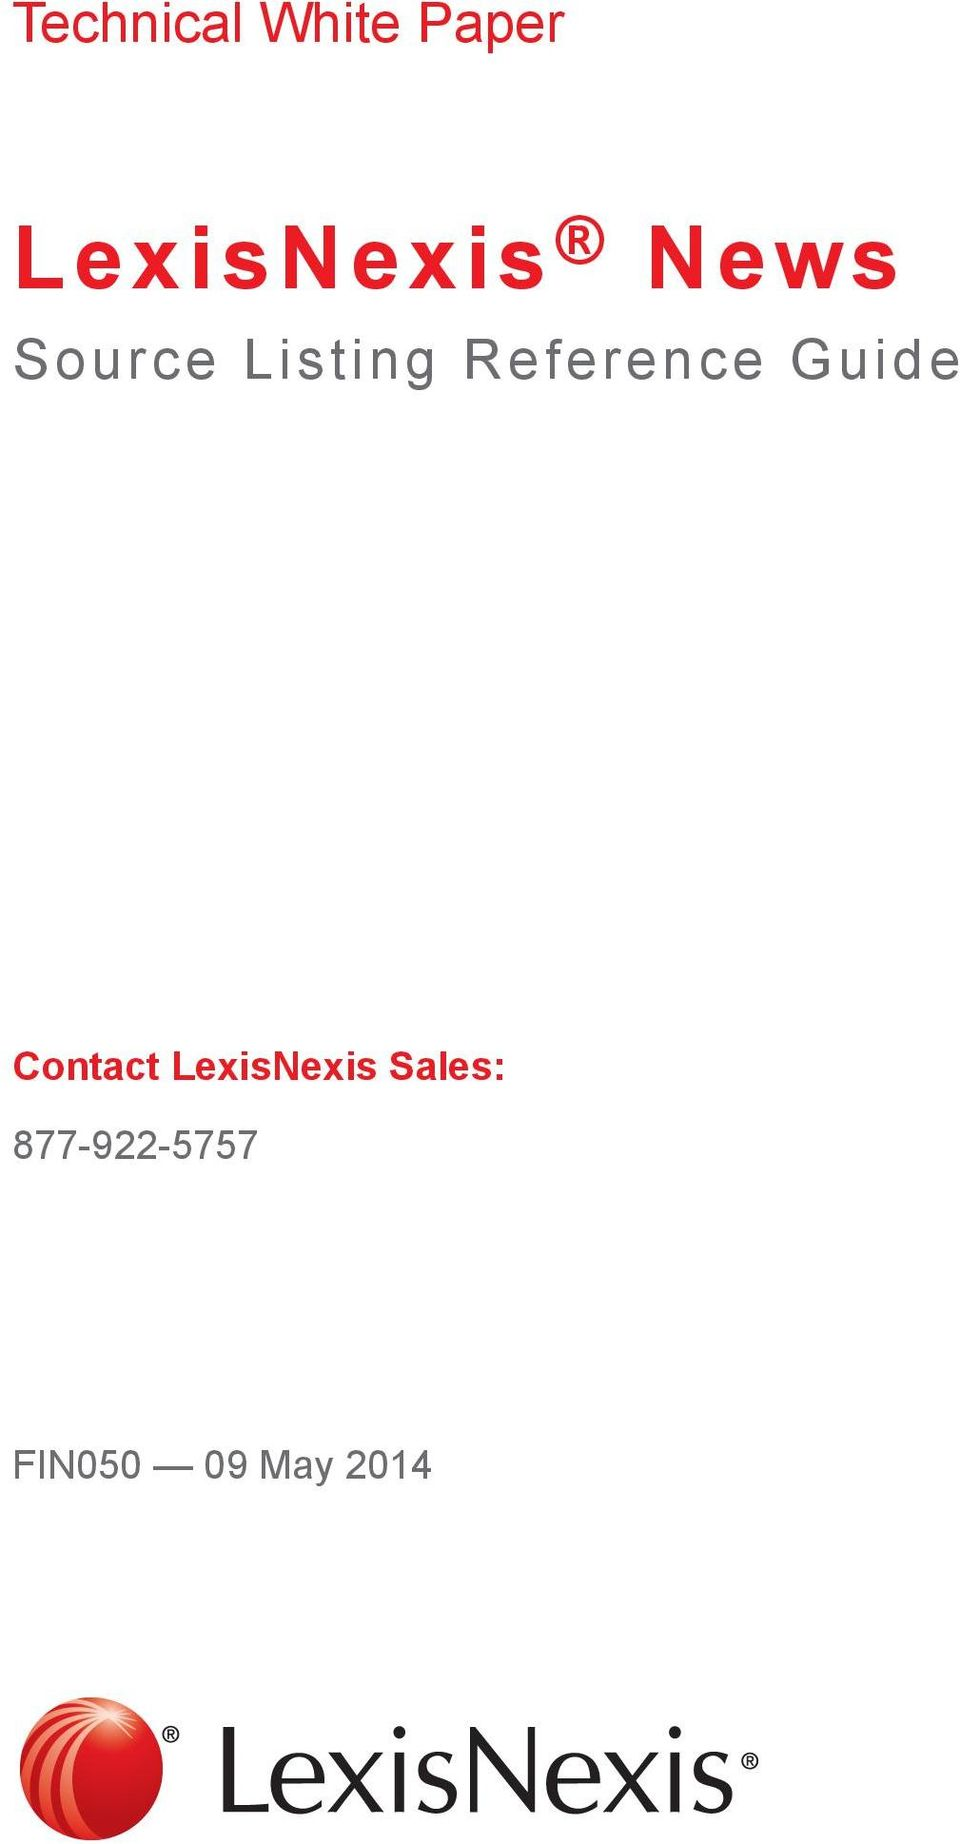 Technical White Paper Lexisnexis News Source Listing Reference